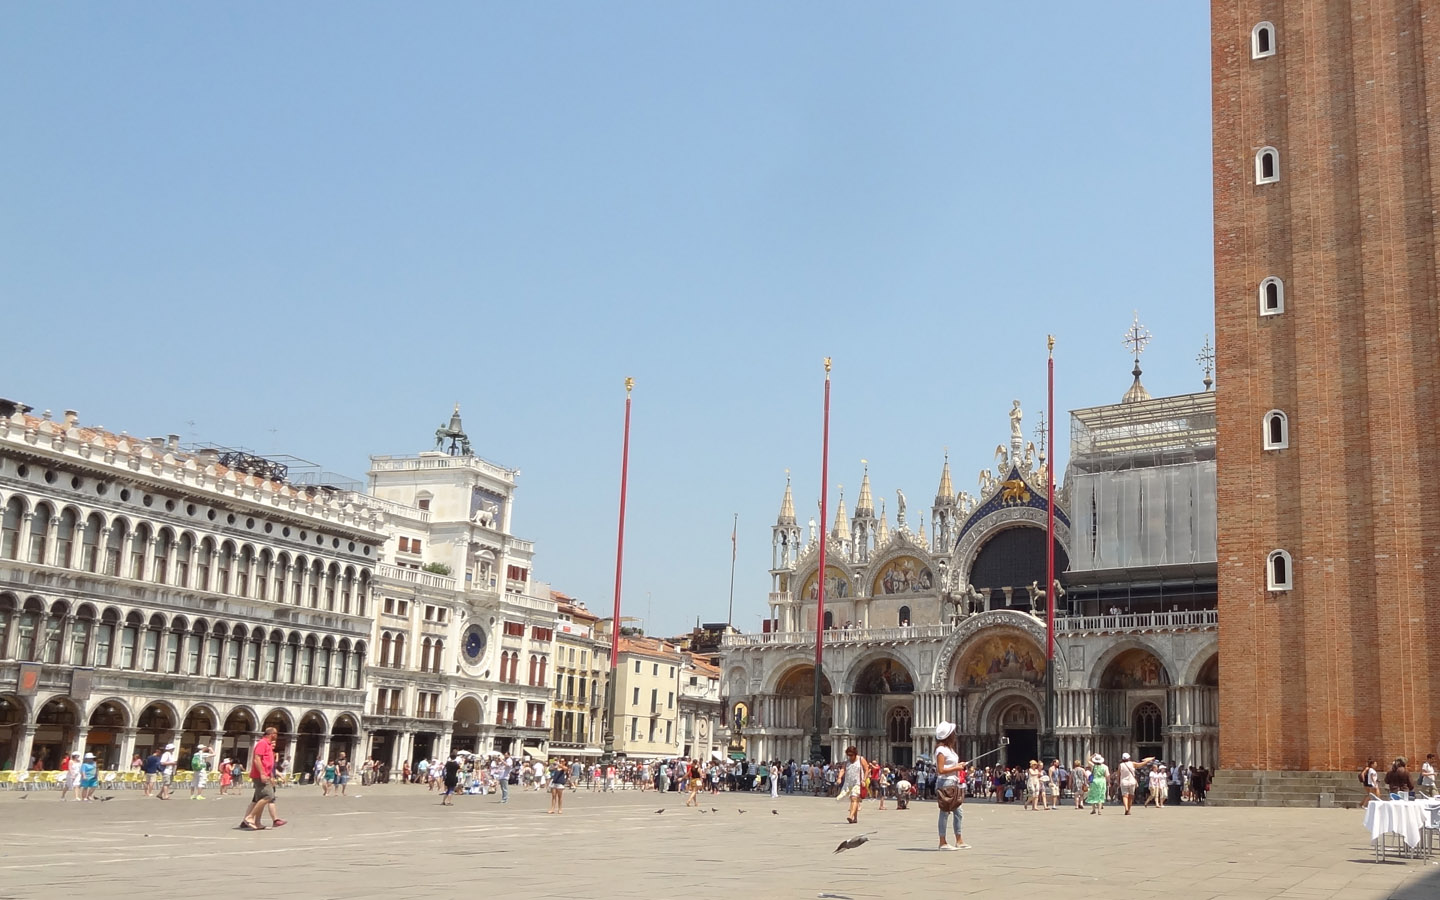 St. Mark's Square (Piazza San Marco) - Venice, Italy, 2015